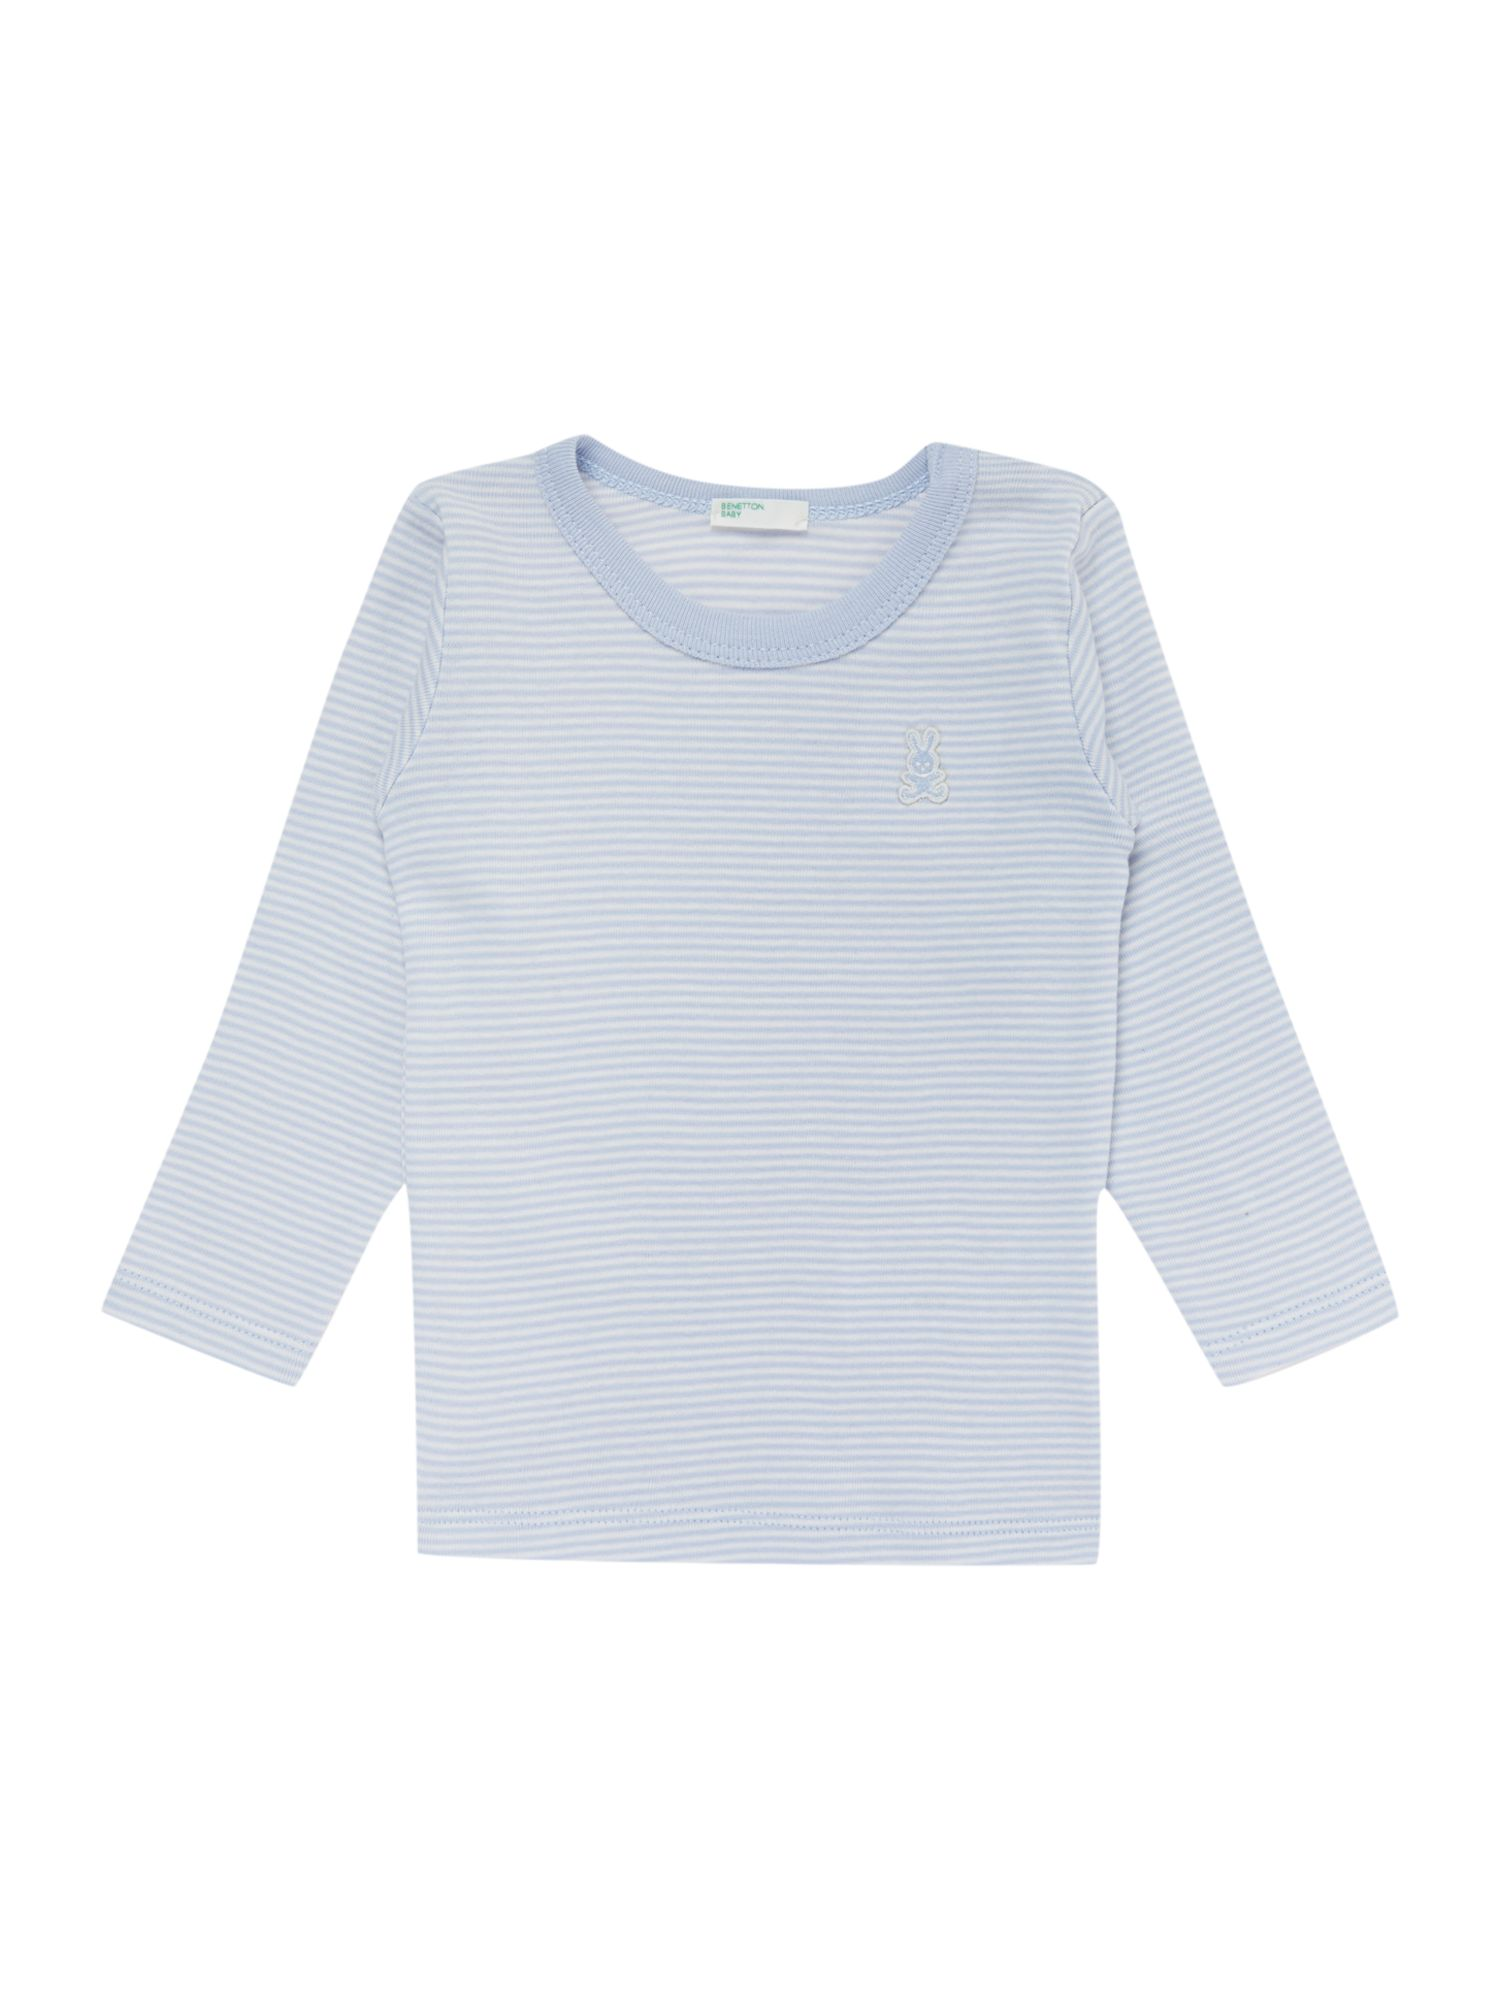 Baby boy stripe top